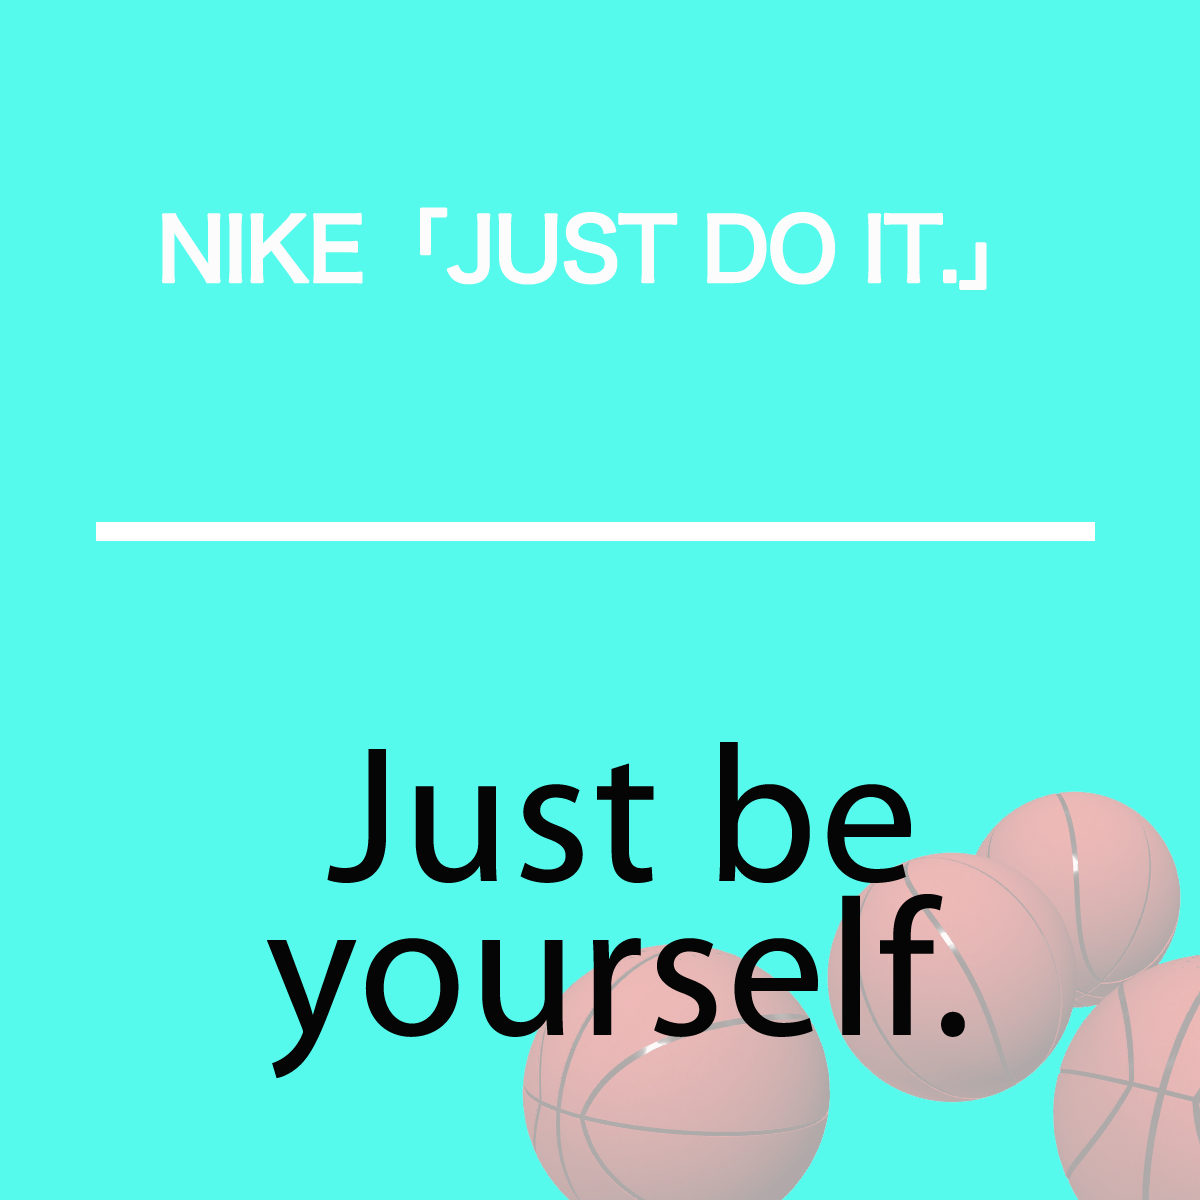 Nikejust do it just be yourself girllish nikejust do it just be yourself girllish solutioingenieria Image collections